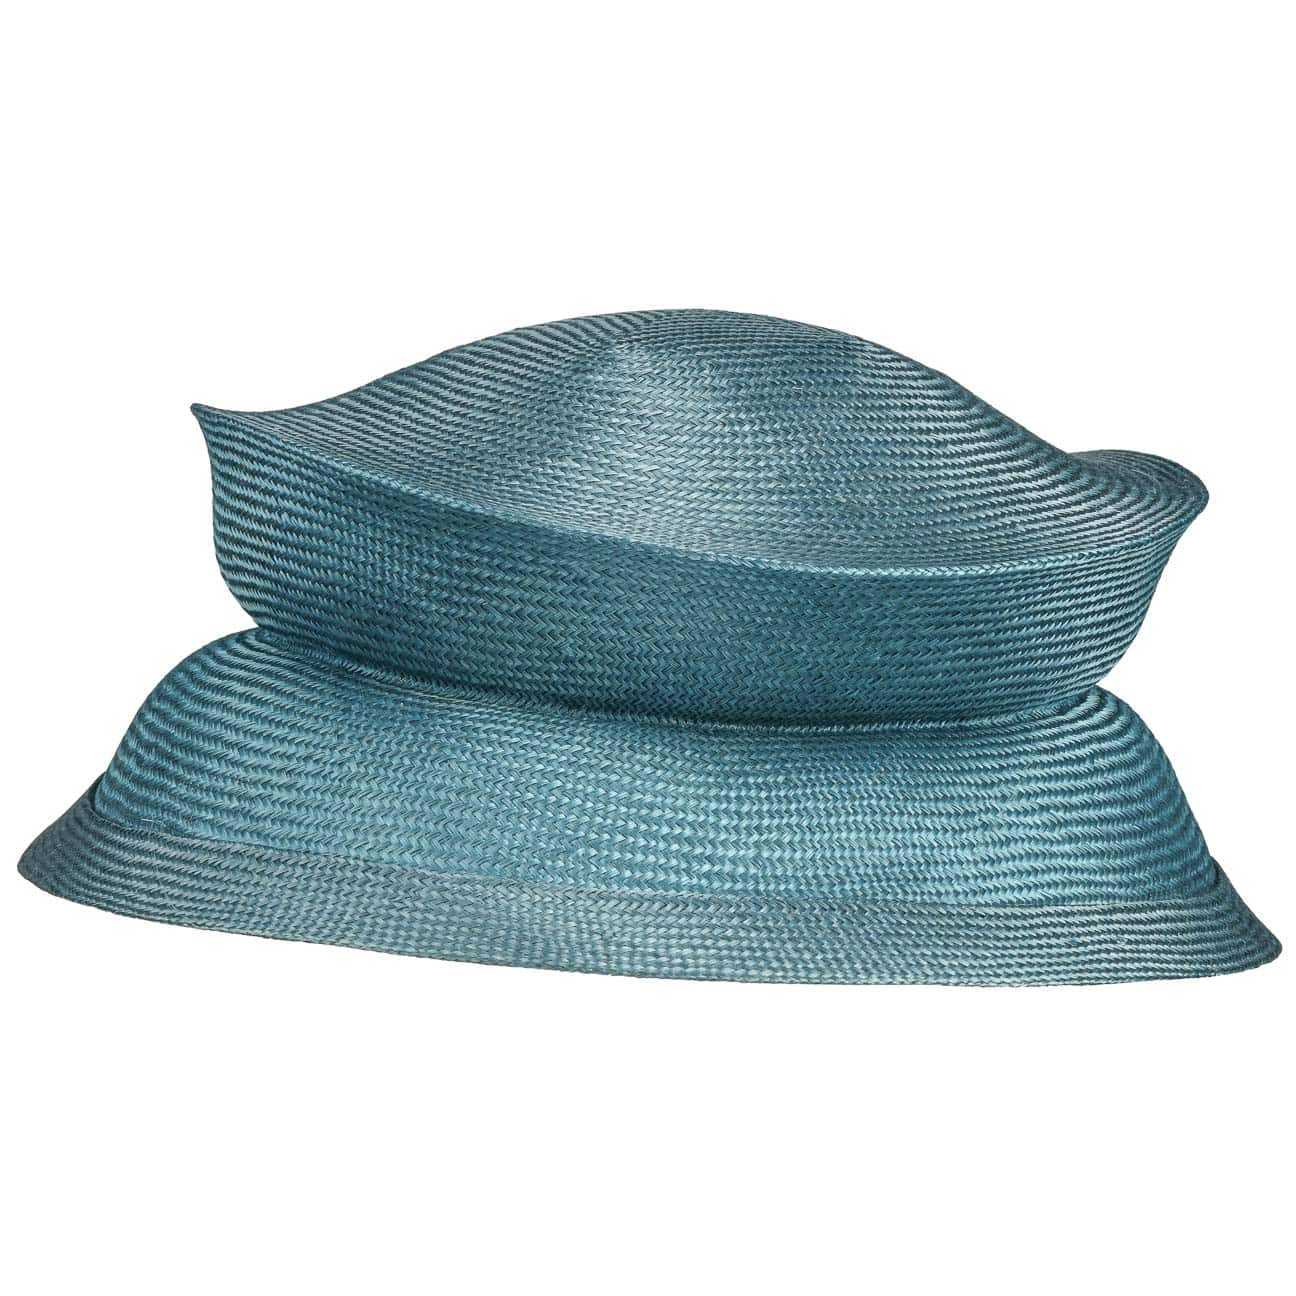 Sisal Collapsible Hat by Seeberger